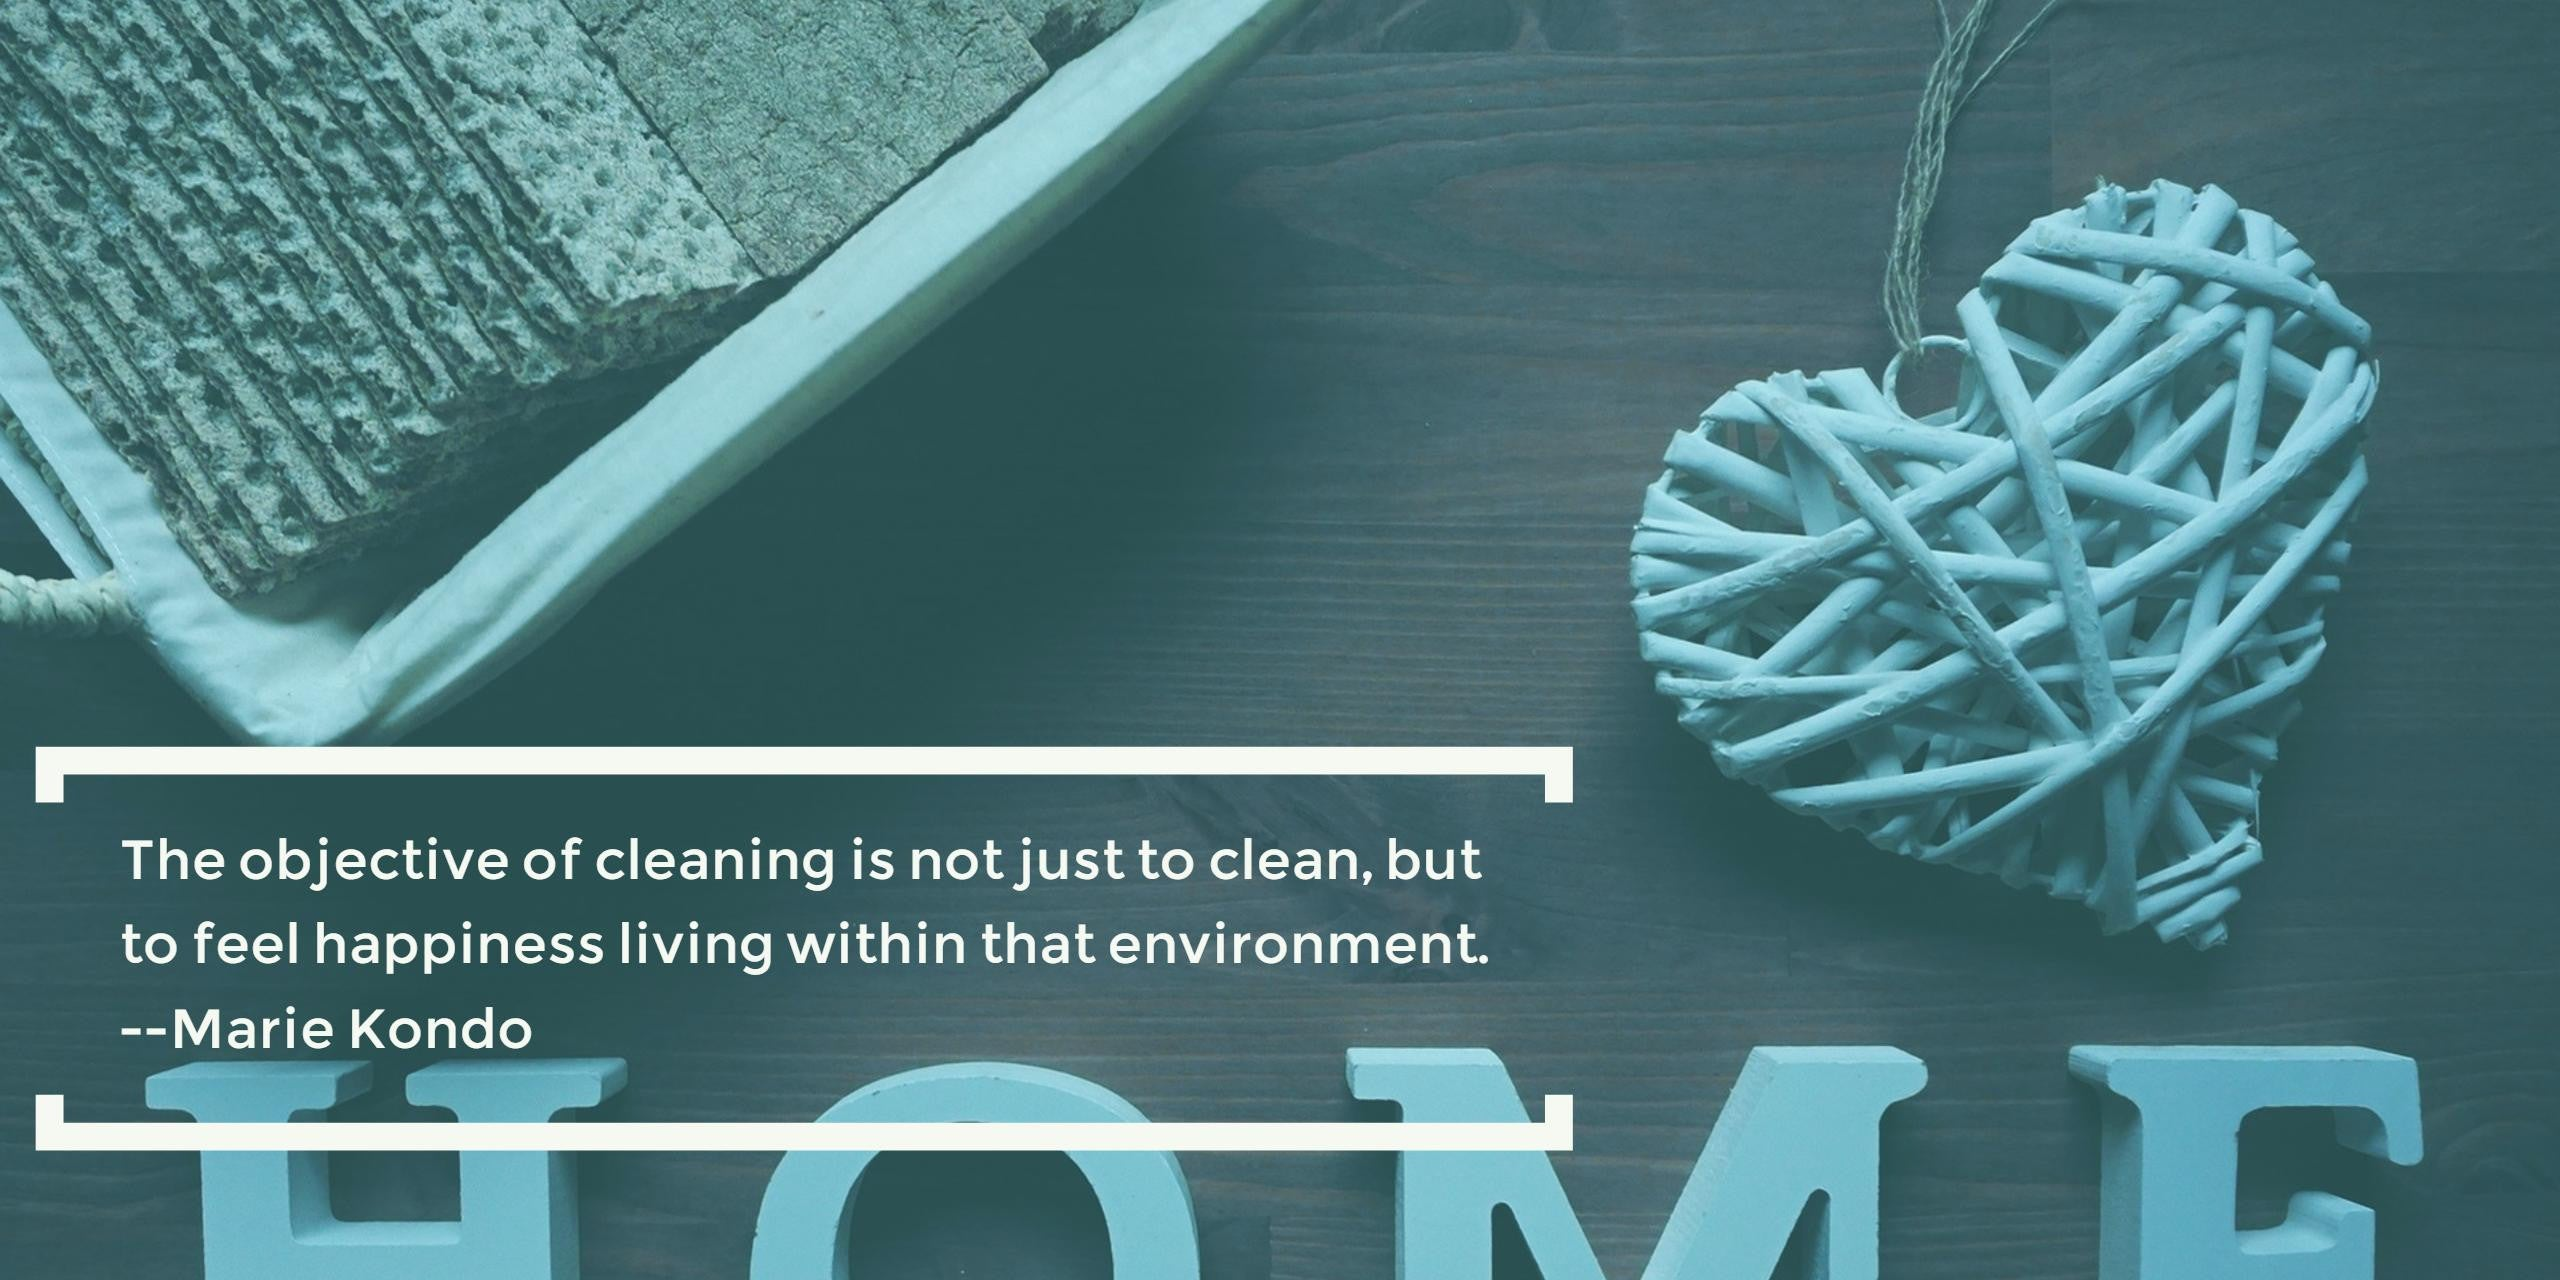 The objective of cleaning is not just to clean, but to feel happiness living within that environment.